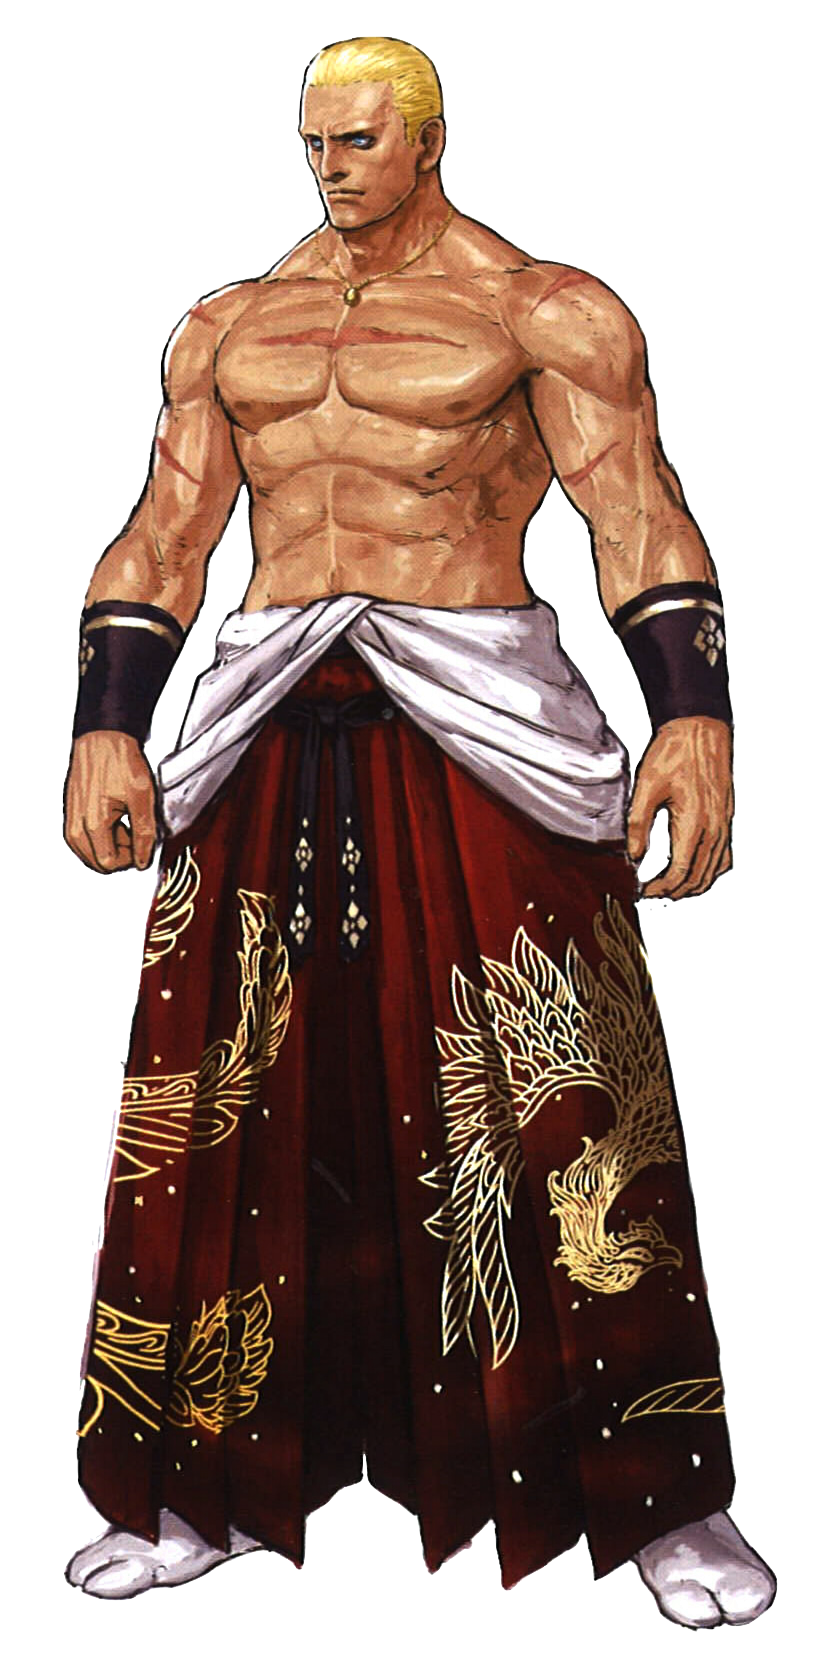 Geese Howard Vs Battles Wiki Fandom He was abandoned by his father, much like the street fighter character remy. geese howard vs battles wiki fandom